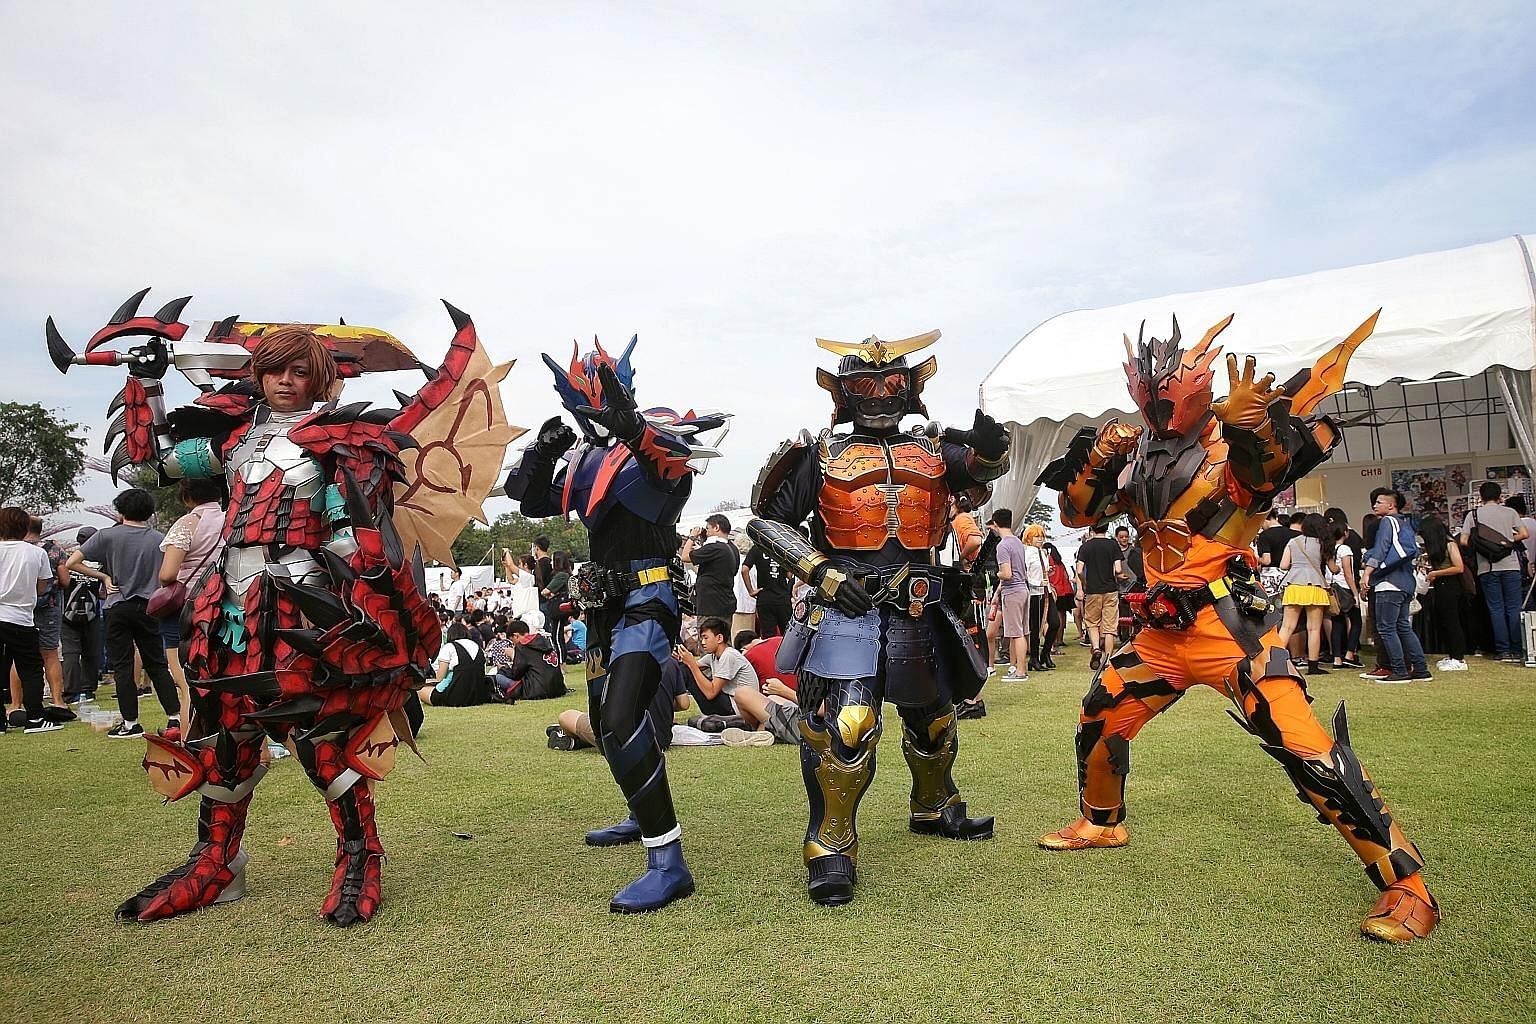 Cosplayers dressed up as a Japanese schoolgirl (above), as well as Ryuk (left) from anime Death Note, and characters (from far left) Monster Hunter, Kamen Rider Cross-Z, SIC Kamen Rider Gaim and Kamen Rider Cross-Z Magma striking a pose at the Sakura